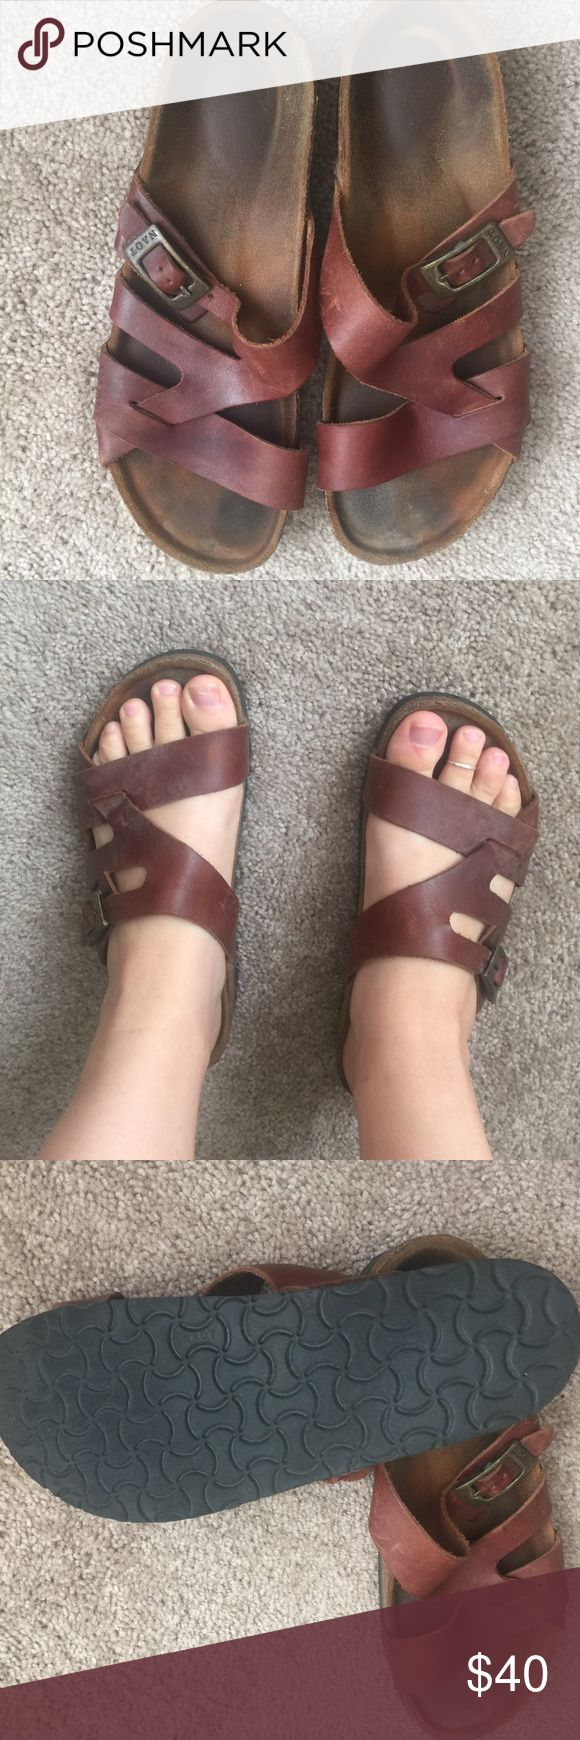 NAOT Sandals NAOT ( just like Birkenstock) same quality, and price as Birks. Cork and leather crafted sandals. NAOT Shoes Sandals